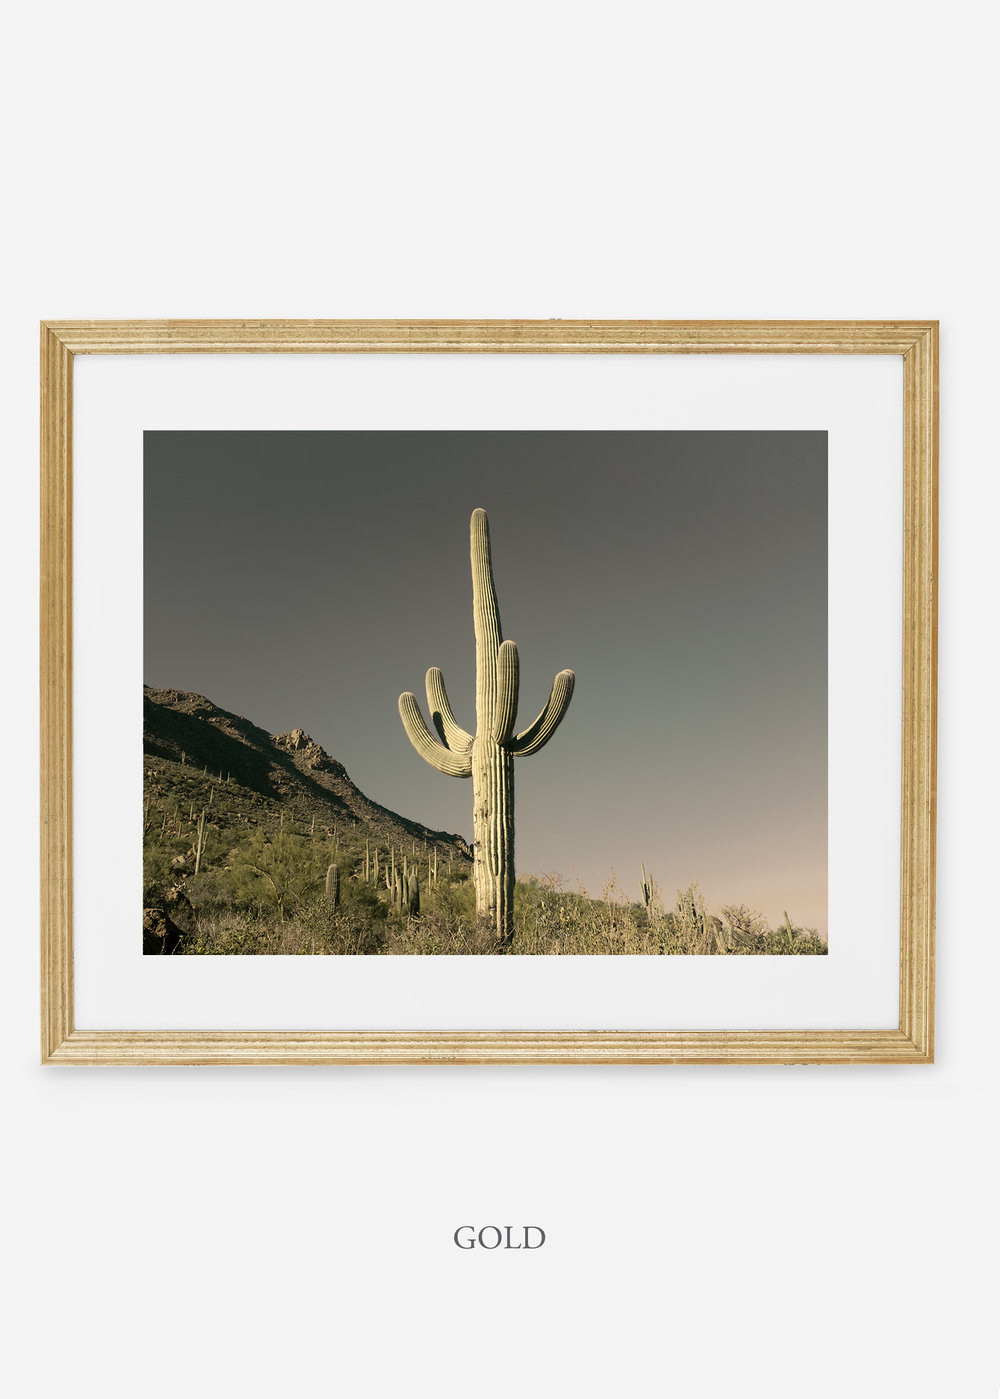 goldframe-saguaroNo.19-wildercalifornia-art-wallart-cactusprint-homedecor-prints-arizona-botanical-artwork-interiordesign.jpg